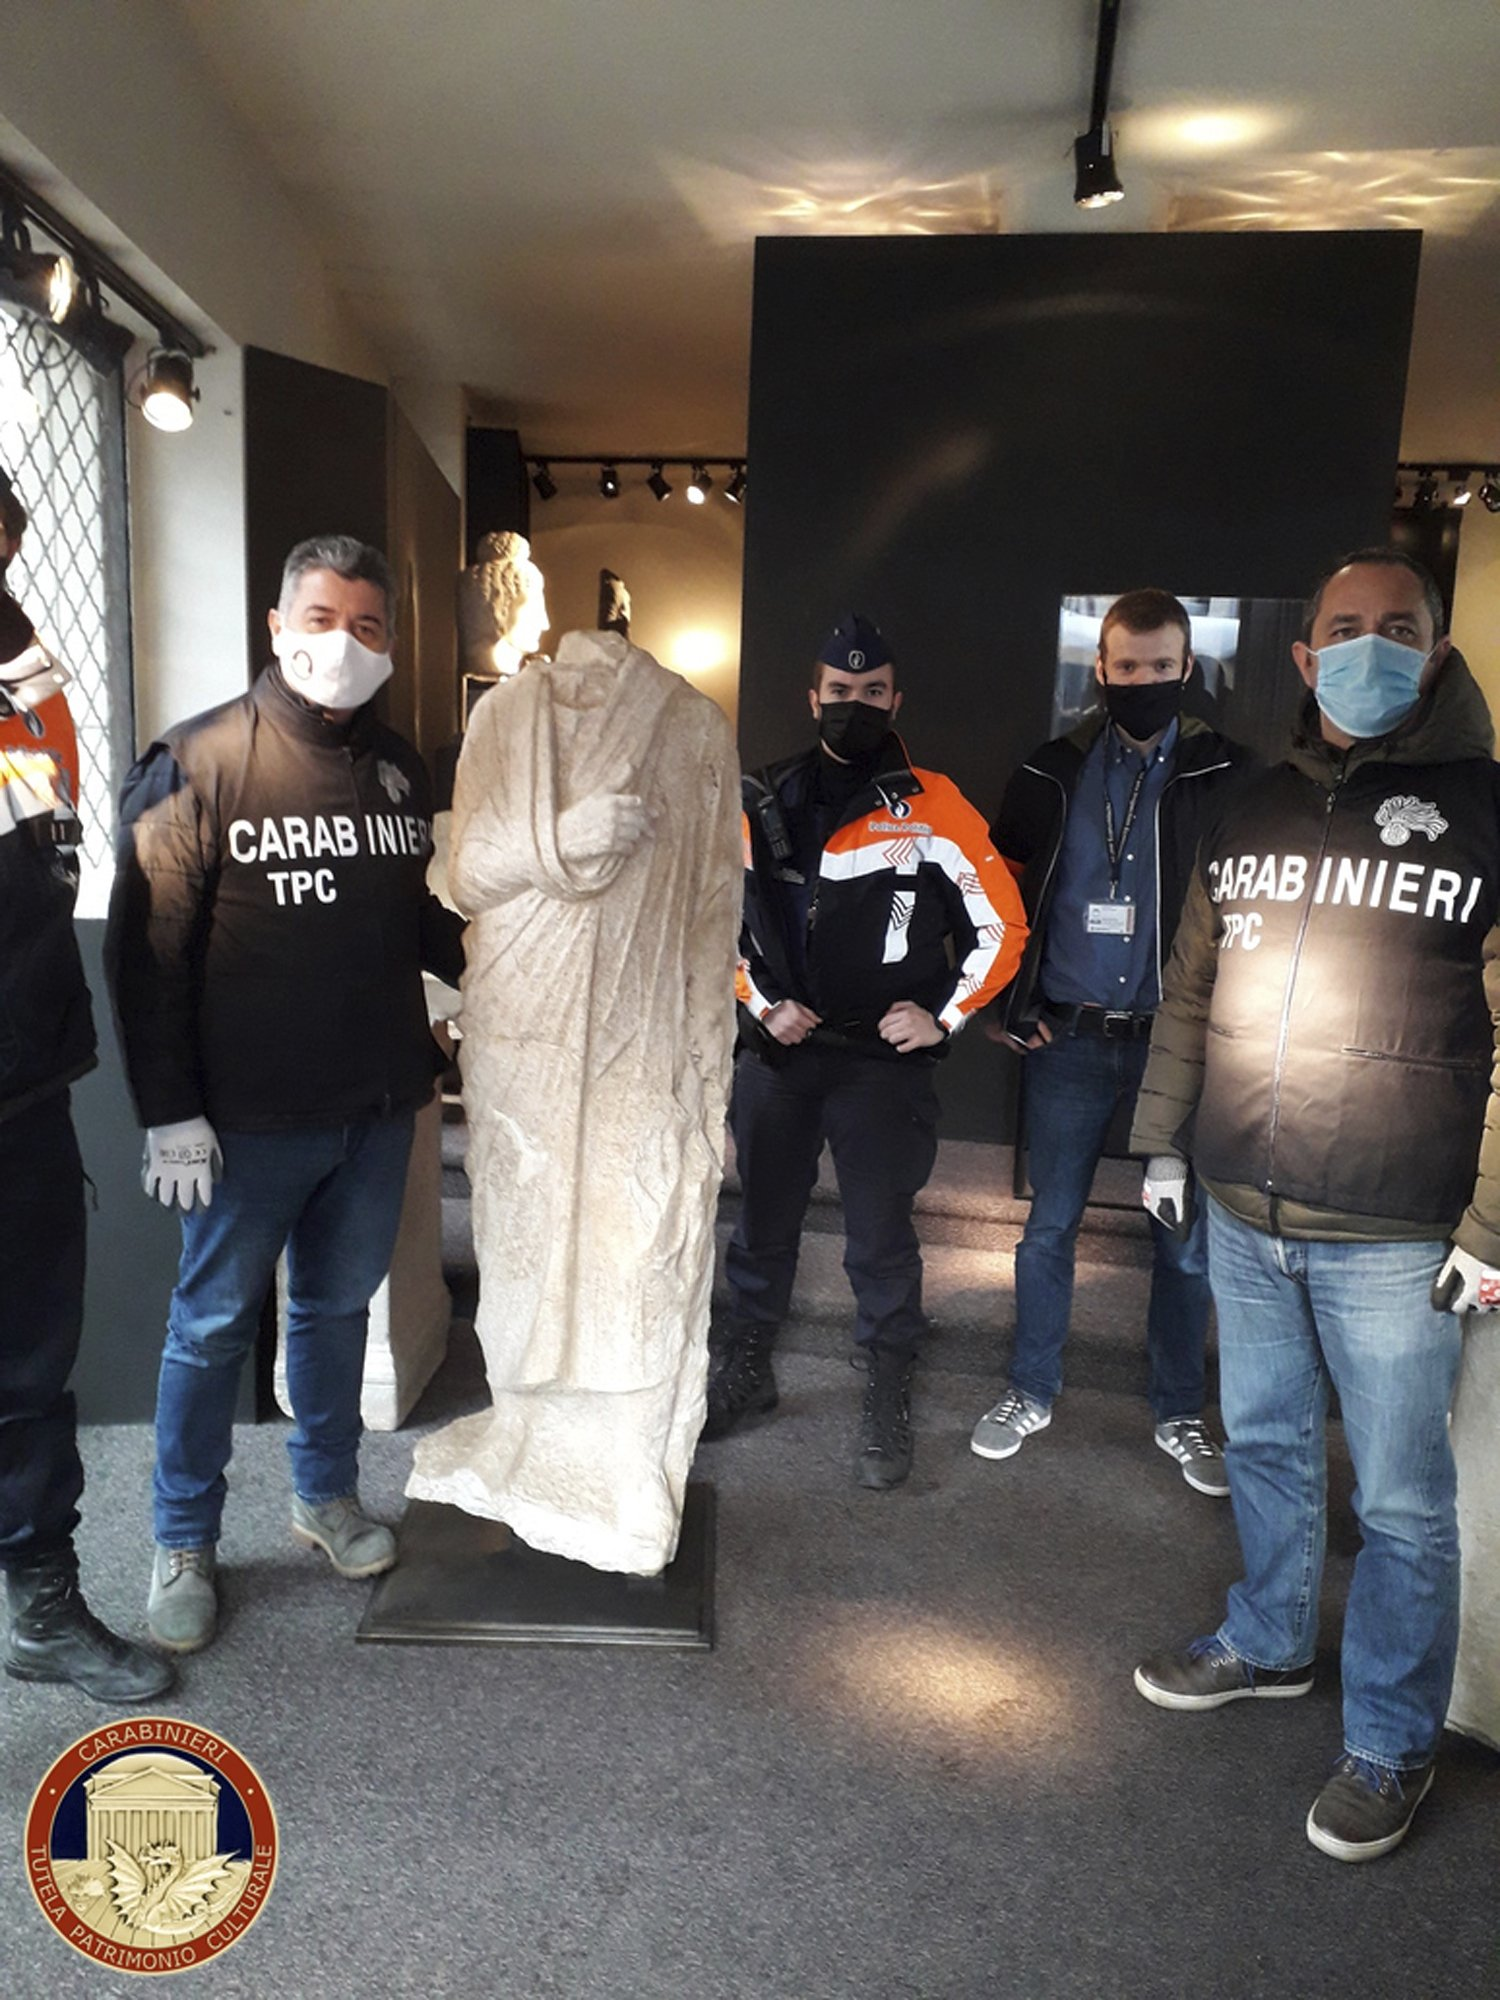 Carabinieri (Italian paramilitary police) officers of the art squad's archaeological unit pose with the headless Roman statue wearing a draped toga in Brussels, Belgium, Feb. 3, 2021. (Carabinieri via AP)